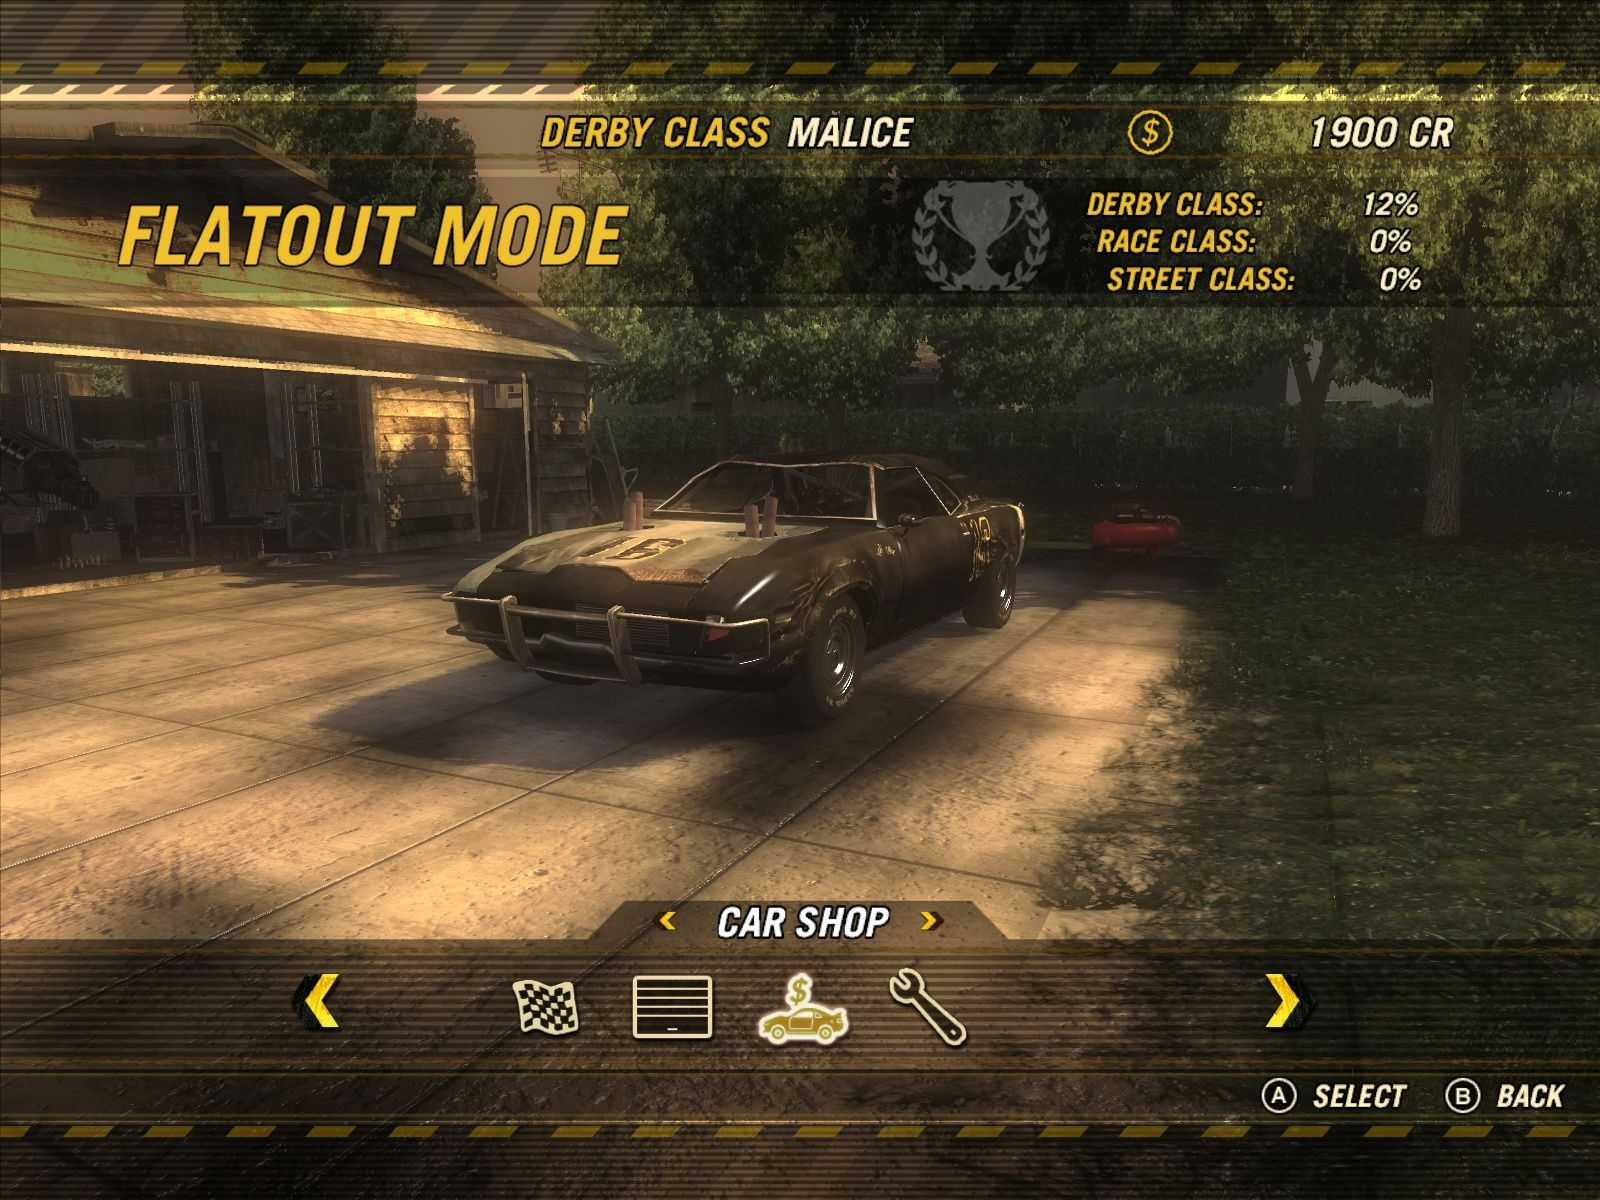 FlatOut: Ultimate Carnage Windows The main screen of the Flatout Mode - where everything happens.